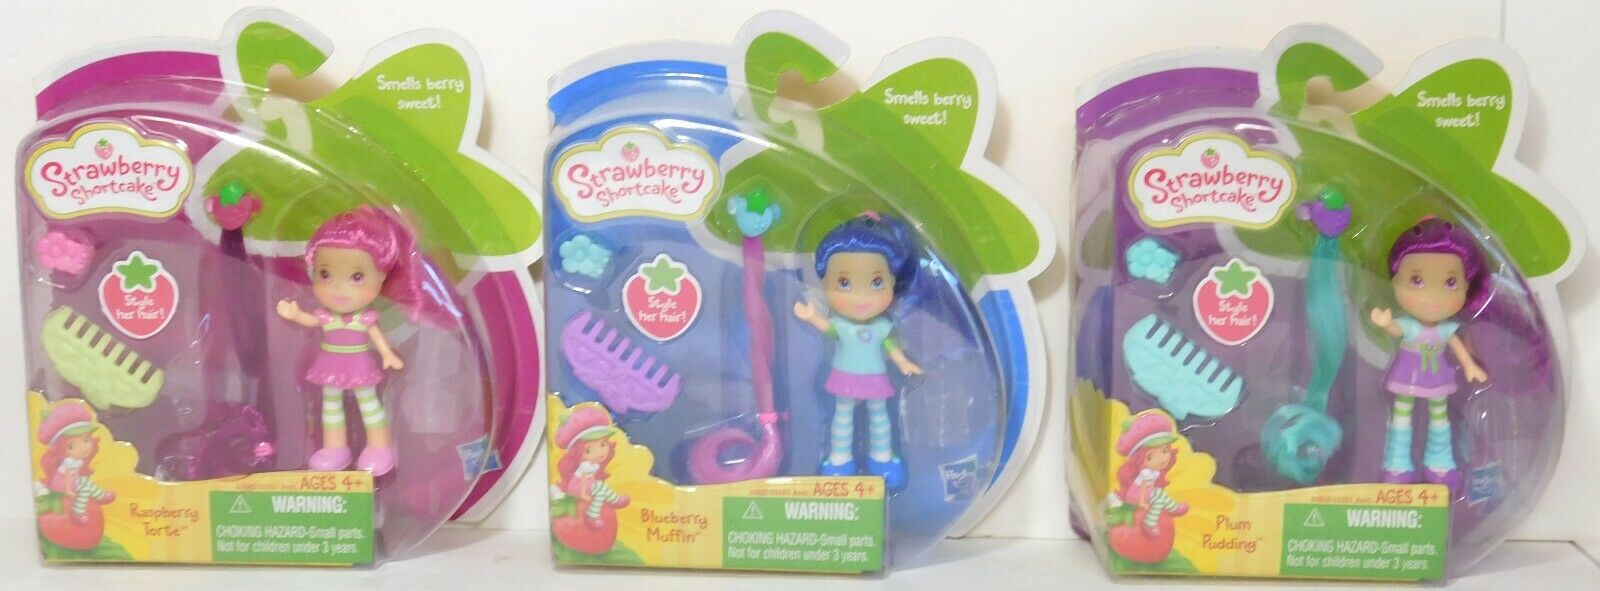 Blauberry Plum Raspberry mini Hair Clip Comb DOLL strawberry shortcake NEW